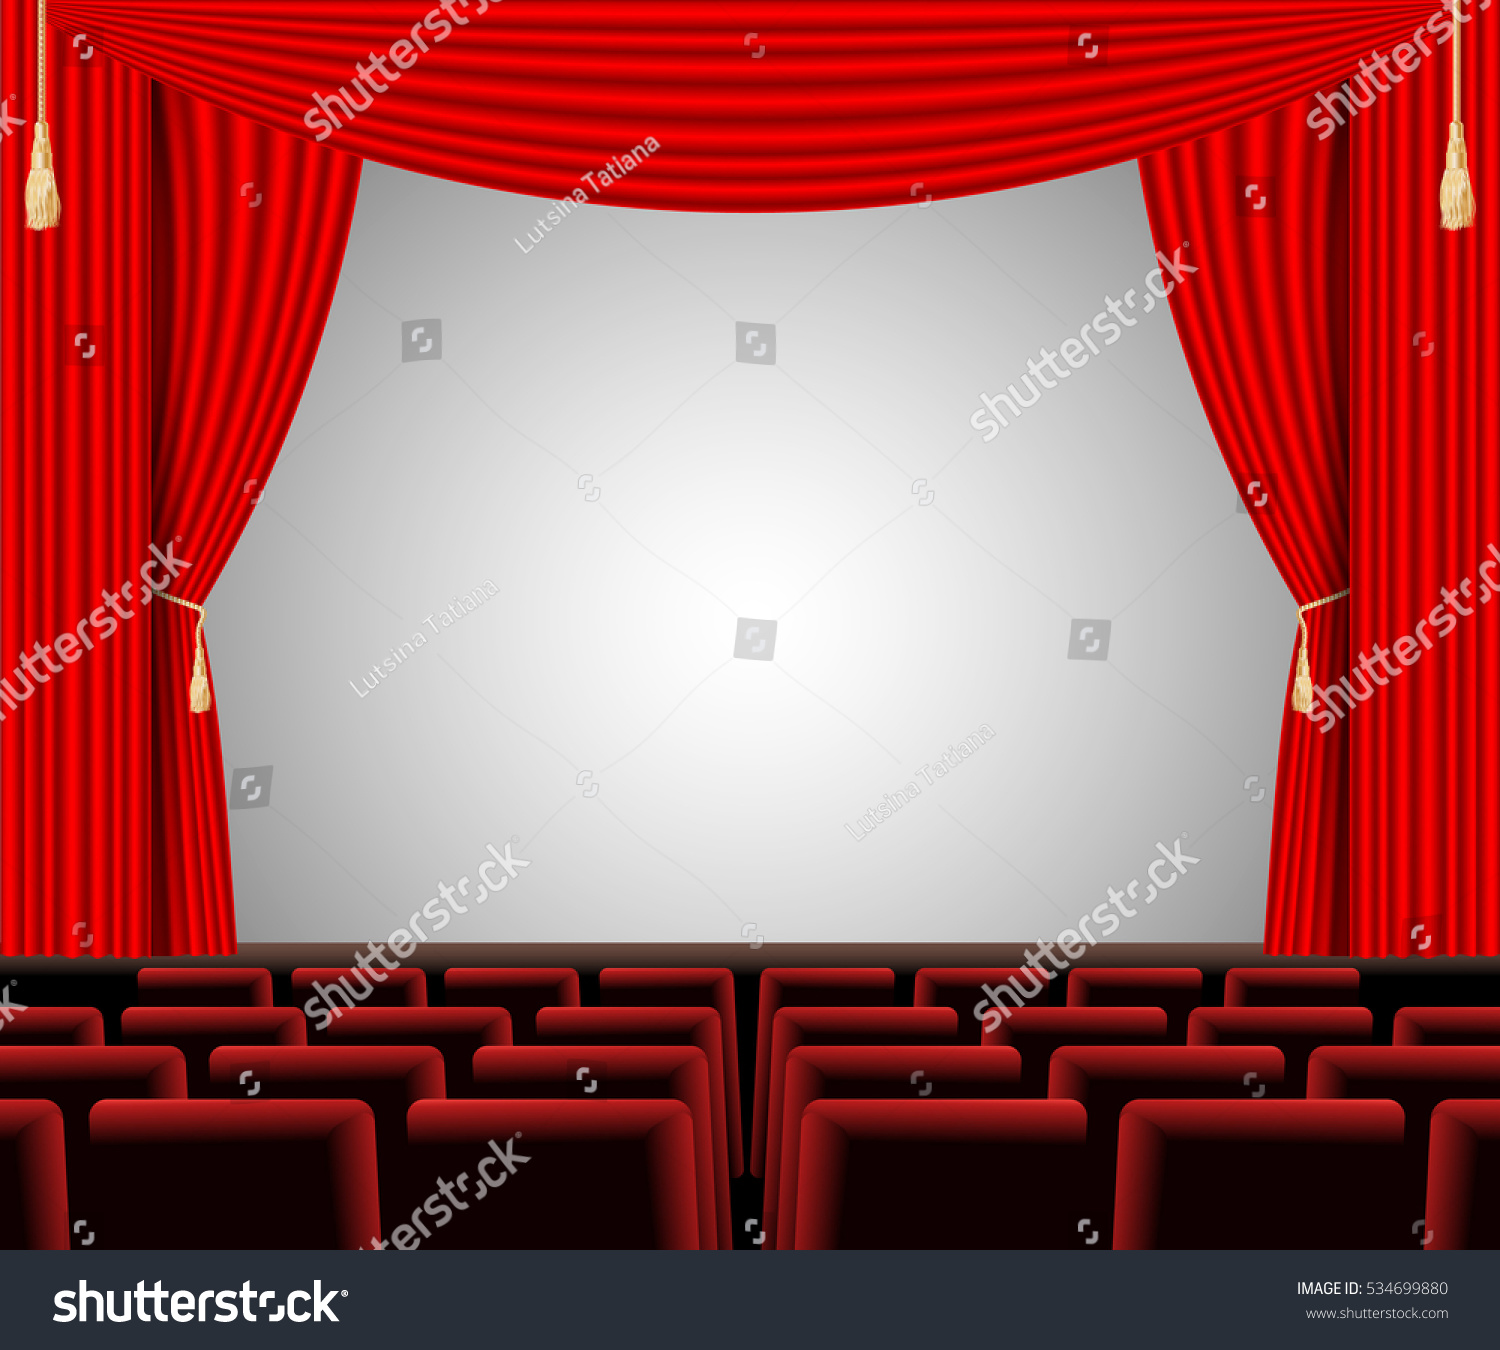 Empty stage curtains with lights - Empty Stage With Red Curtain And Empty Auditorium Poster For Concert Party Theater